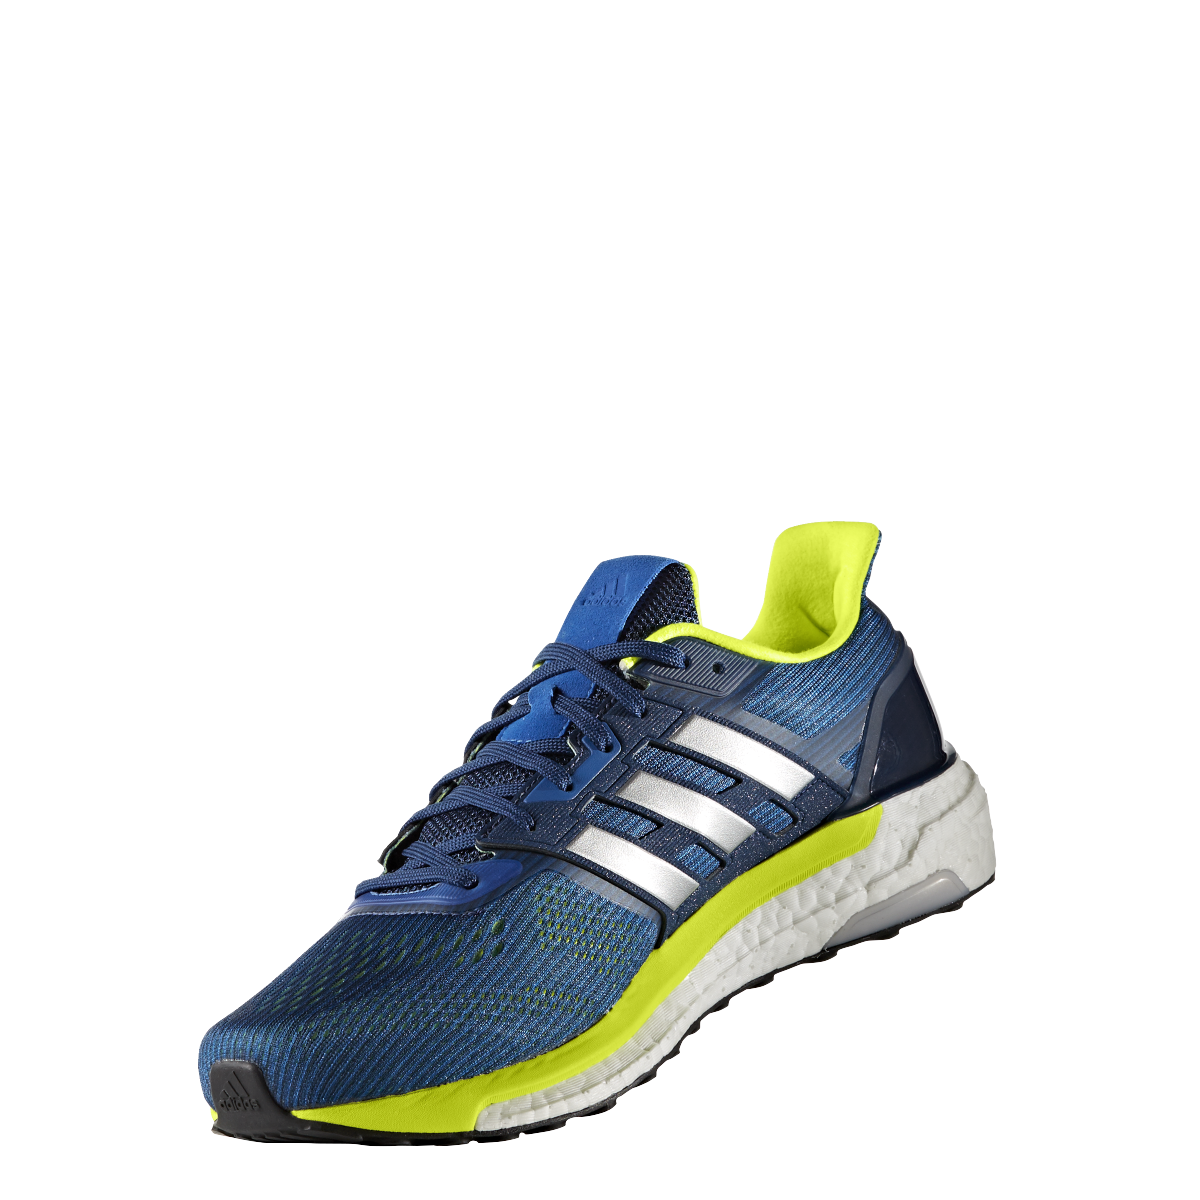 adidas supernova herren laufschuhe running blau gelb bb6037 sport klingenmaier. Black Bedroom Furniture Sets. Home Design Ideas